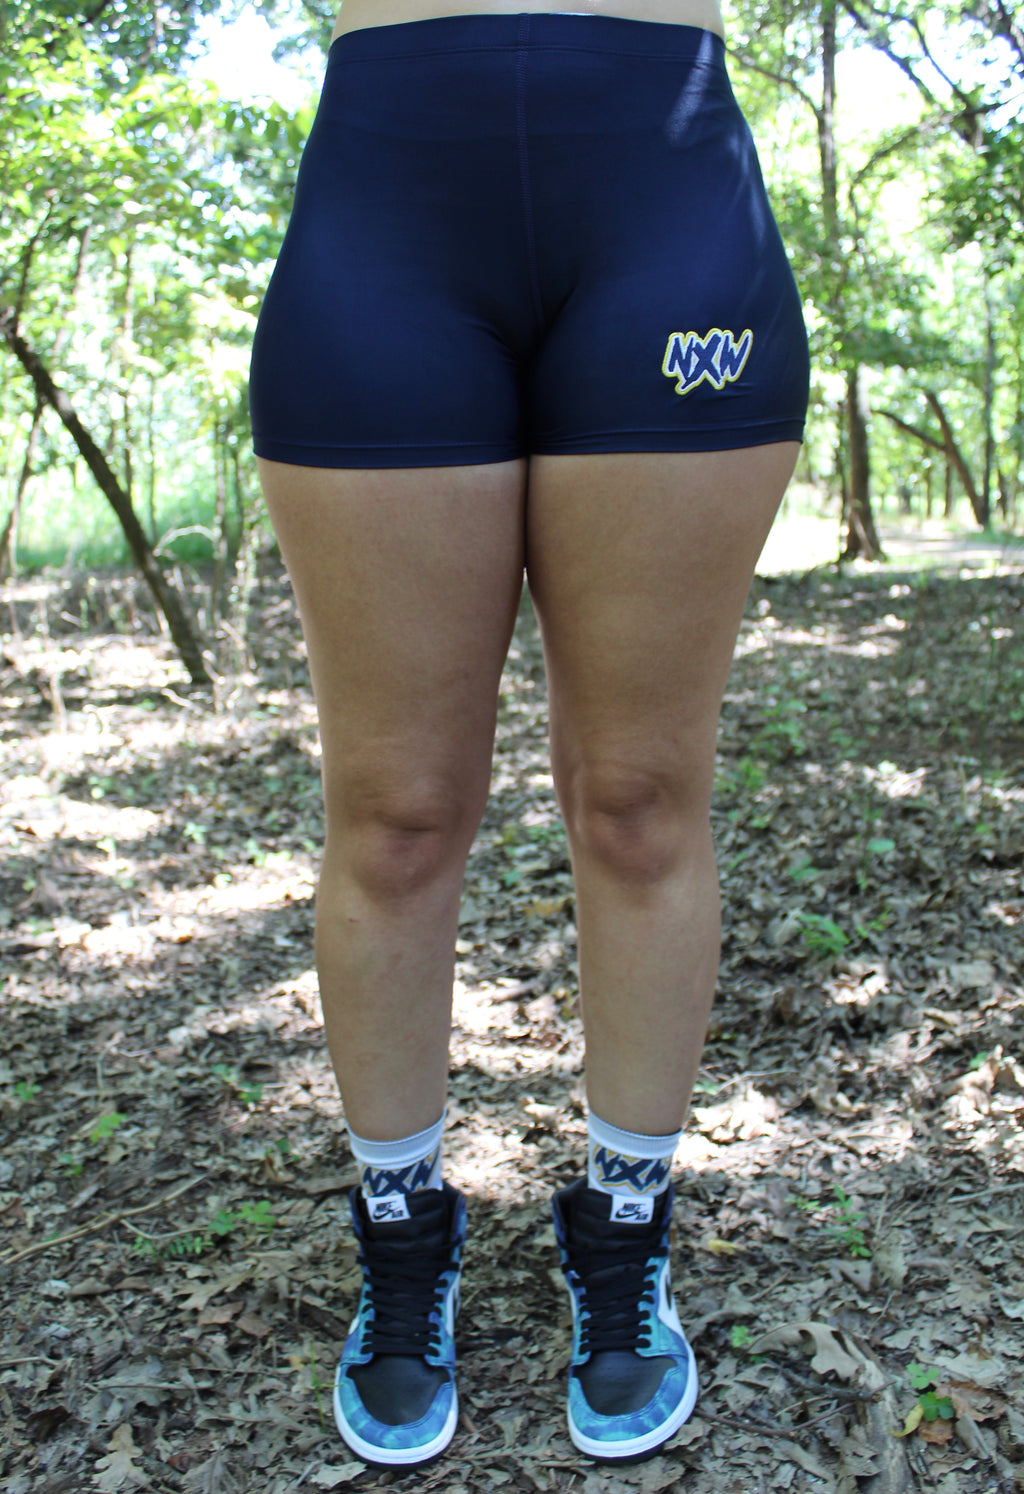 Dynamic NXW Compression Shorts